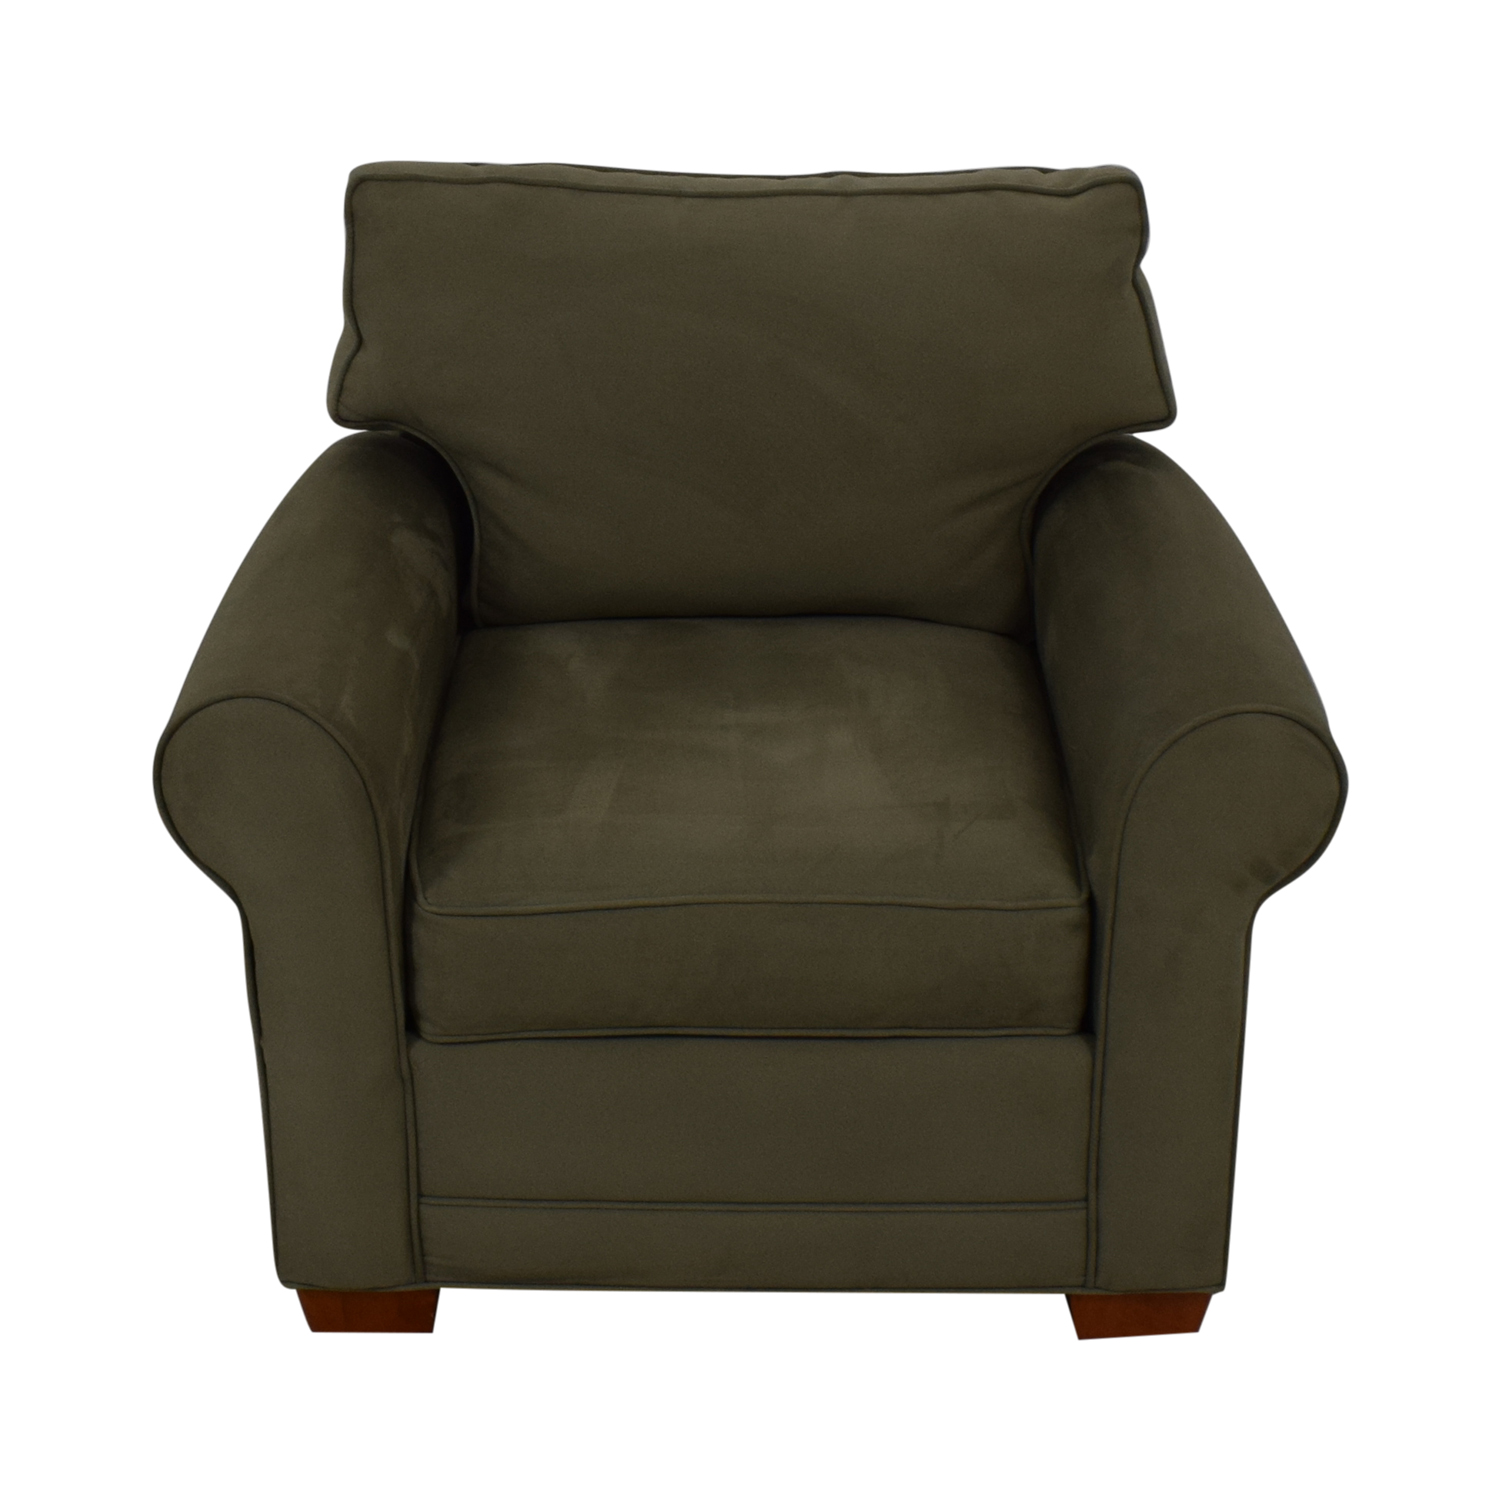 shop Raymour & Flanigan Green Accent Chair Raymour & Flanigan Chairs